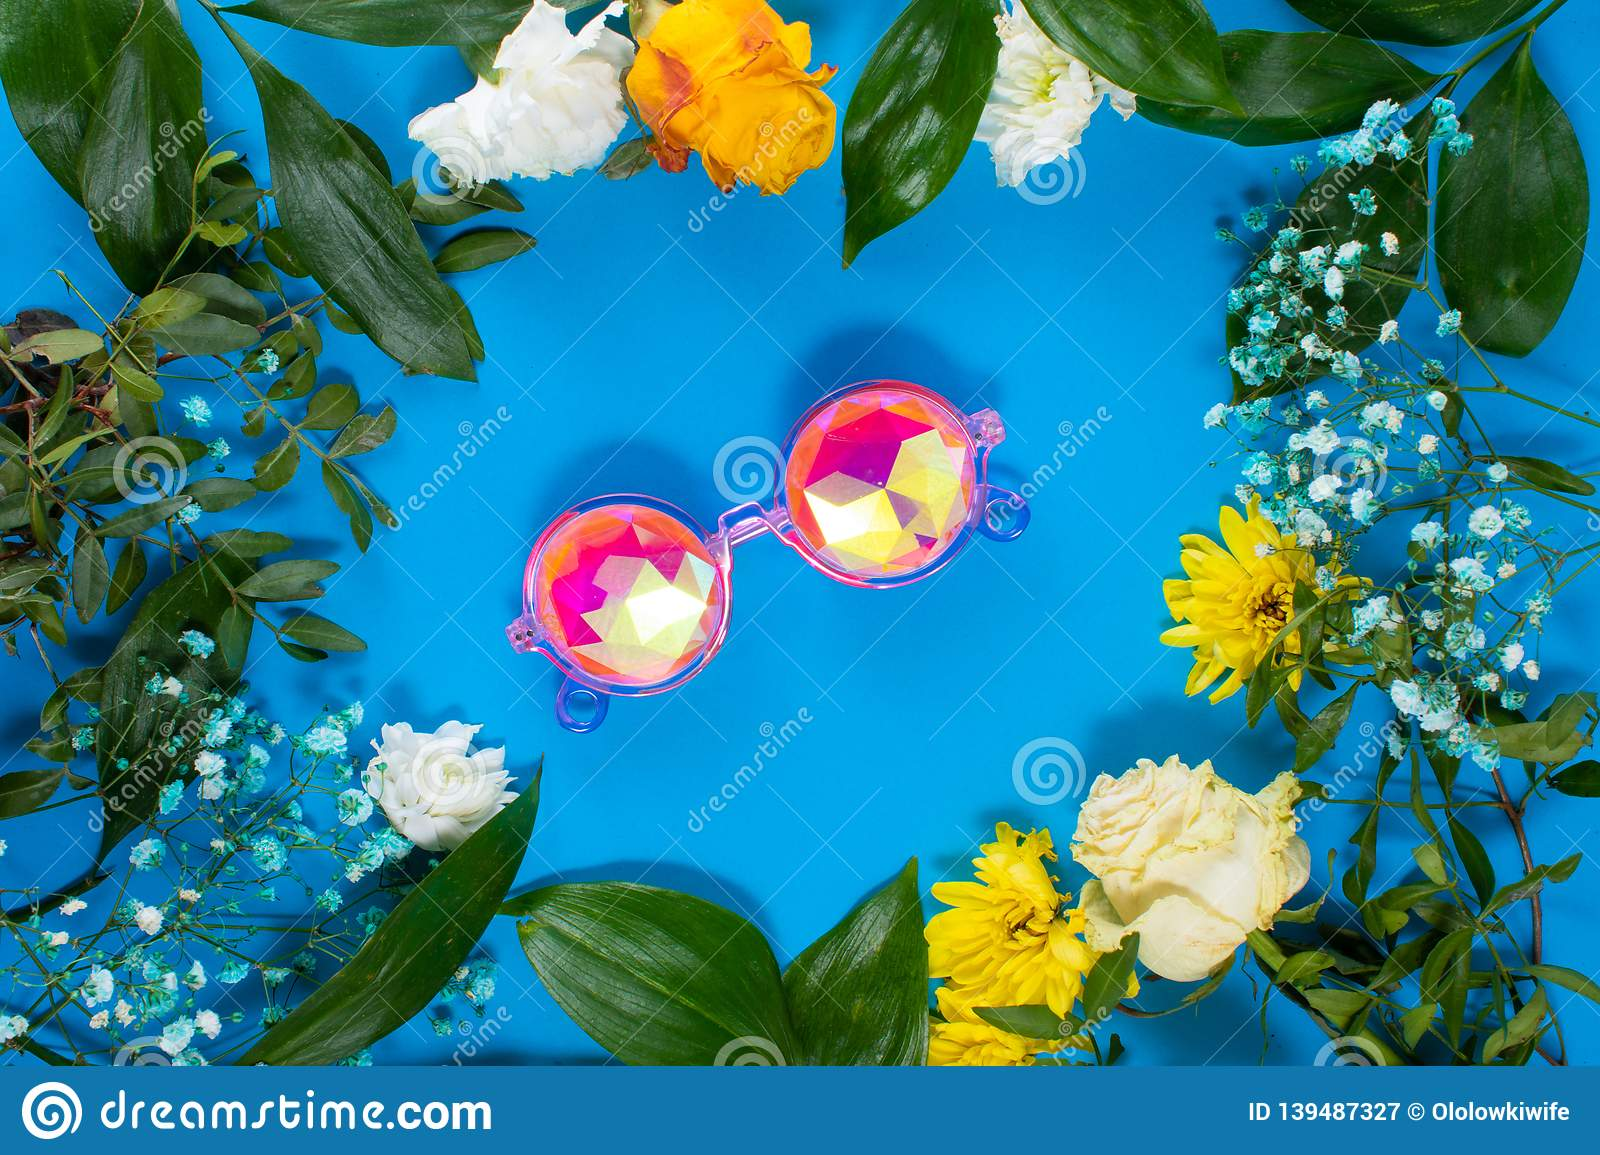 Round frame made of yellow and white summer flowers with green leaves.